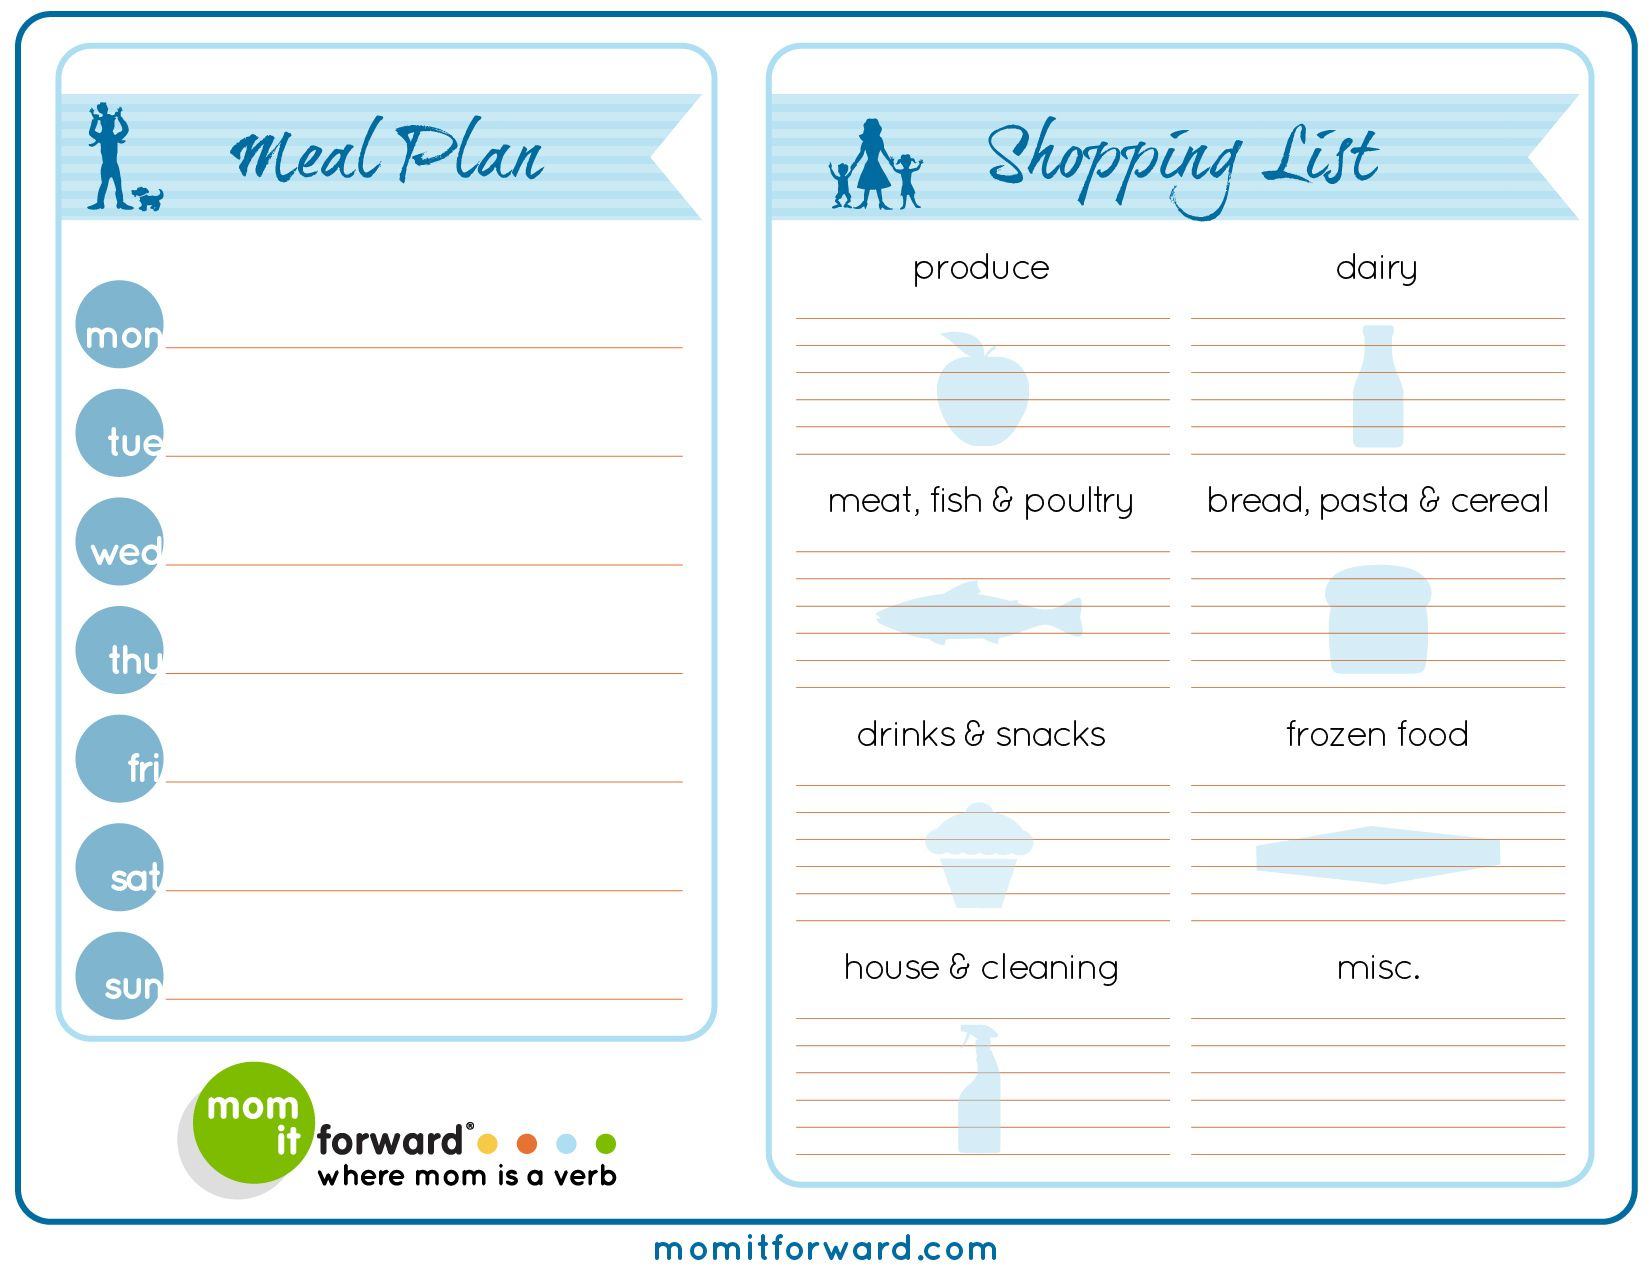 Worksheets Meal Planning Worksheet free 30 day meal plan printable planning made easy do you enjoy making dinner if i dont have my family dinners planned out for a week at time cooking is chore here our pla